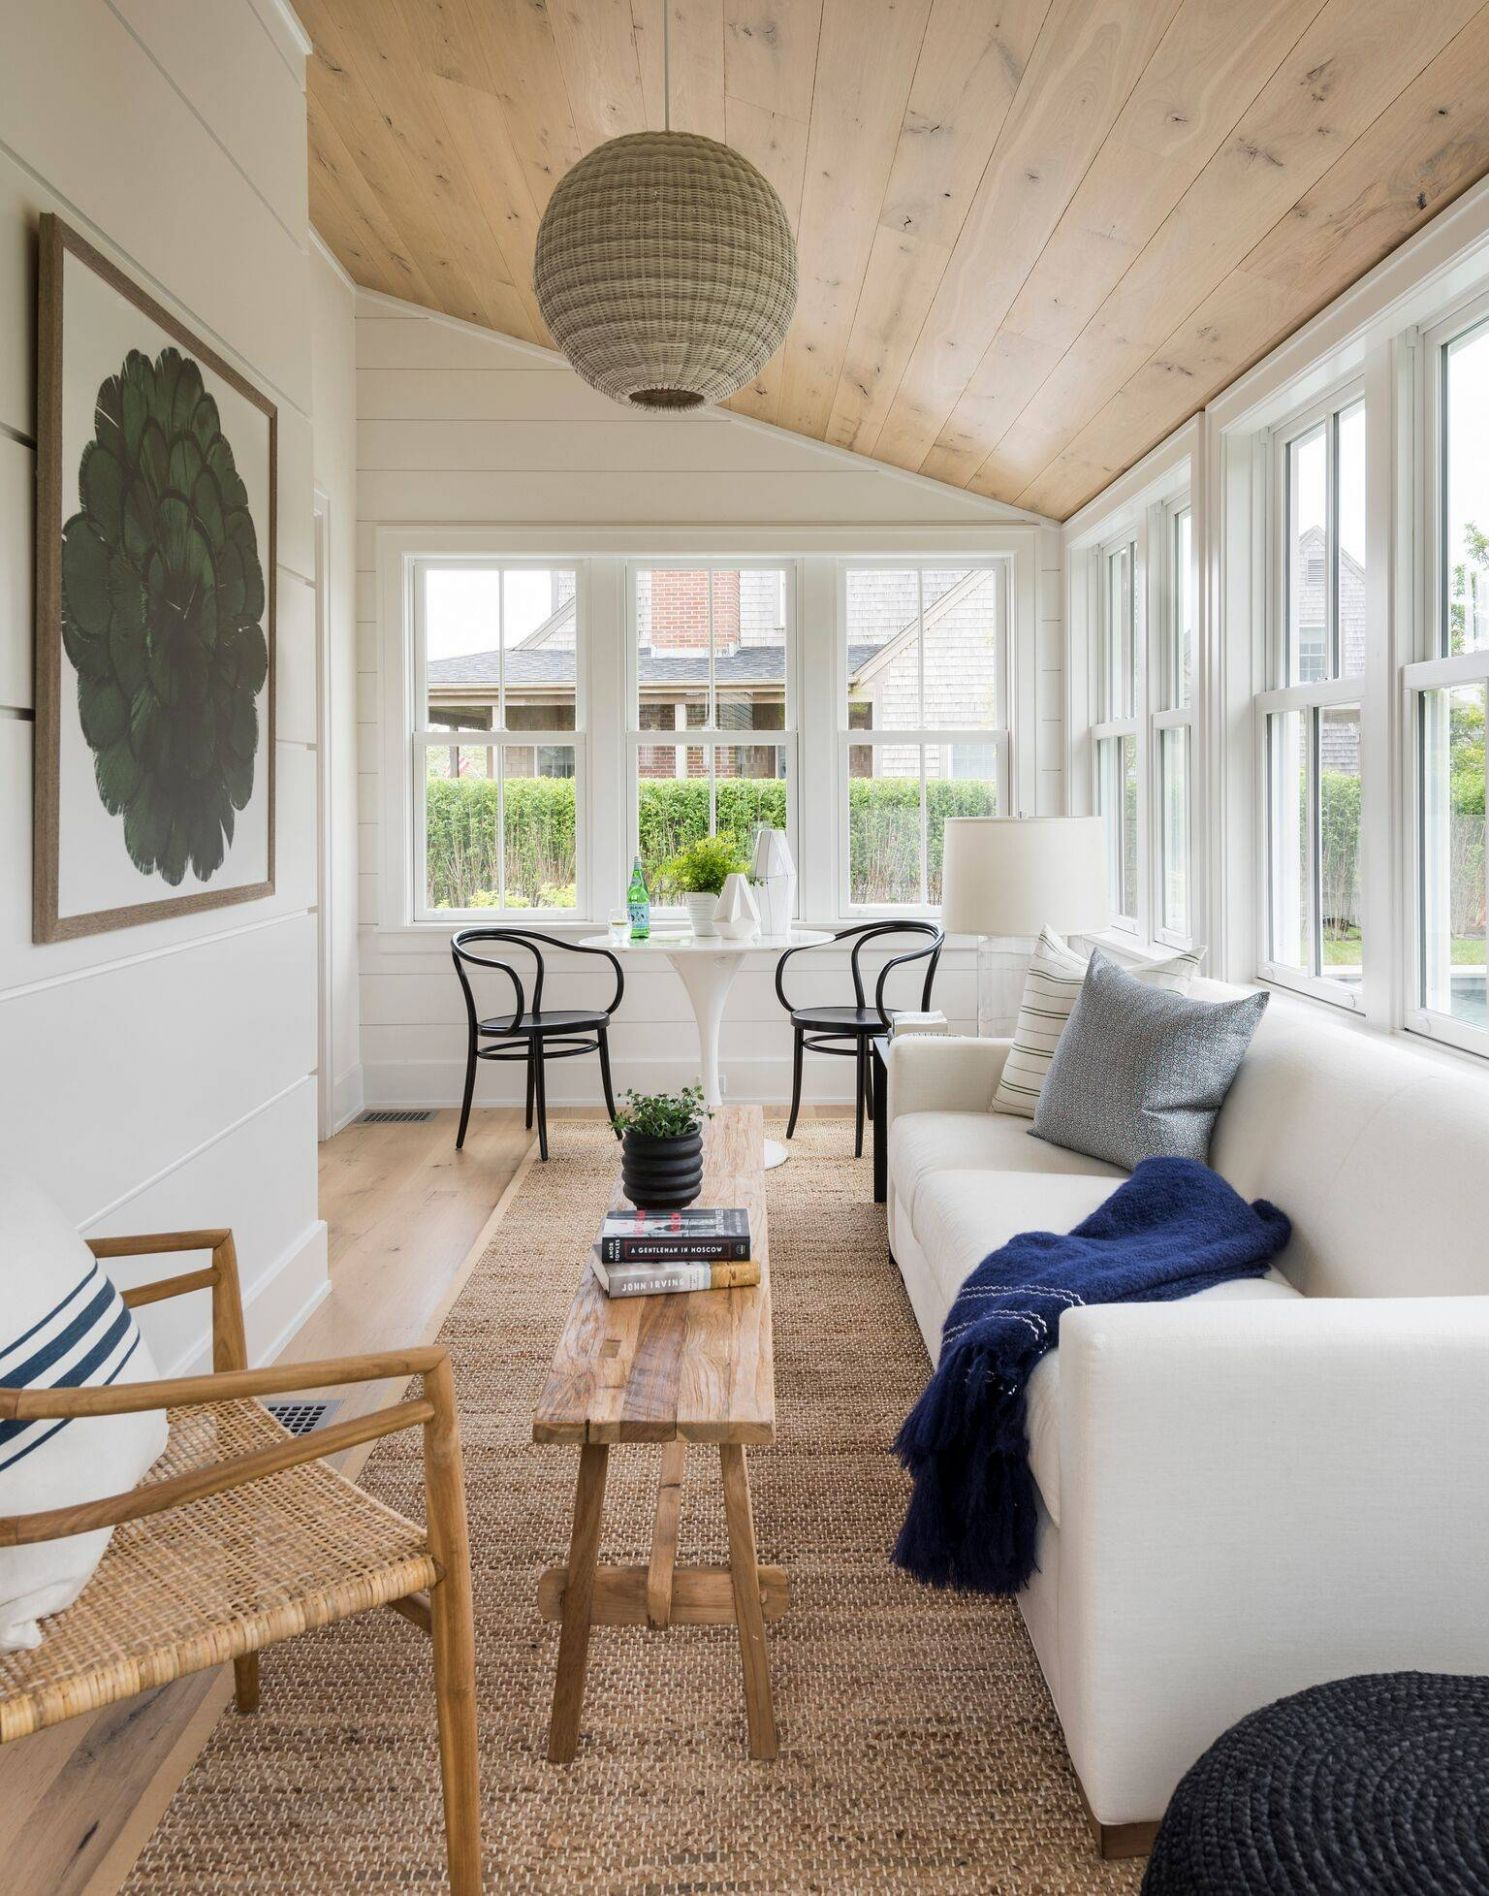 8 Beautiful Sunroom Pictures & Ideas | Houzz - small sunroom renovation